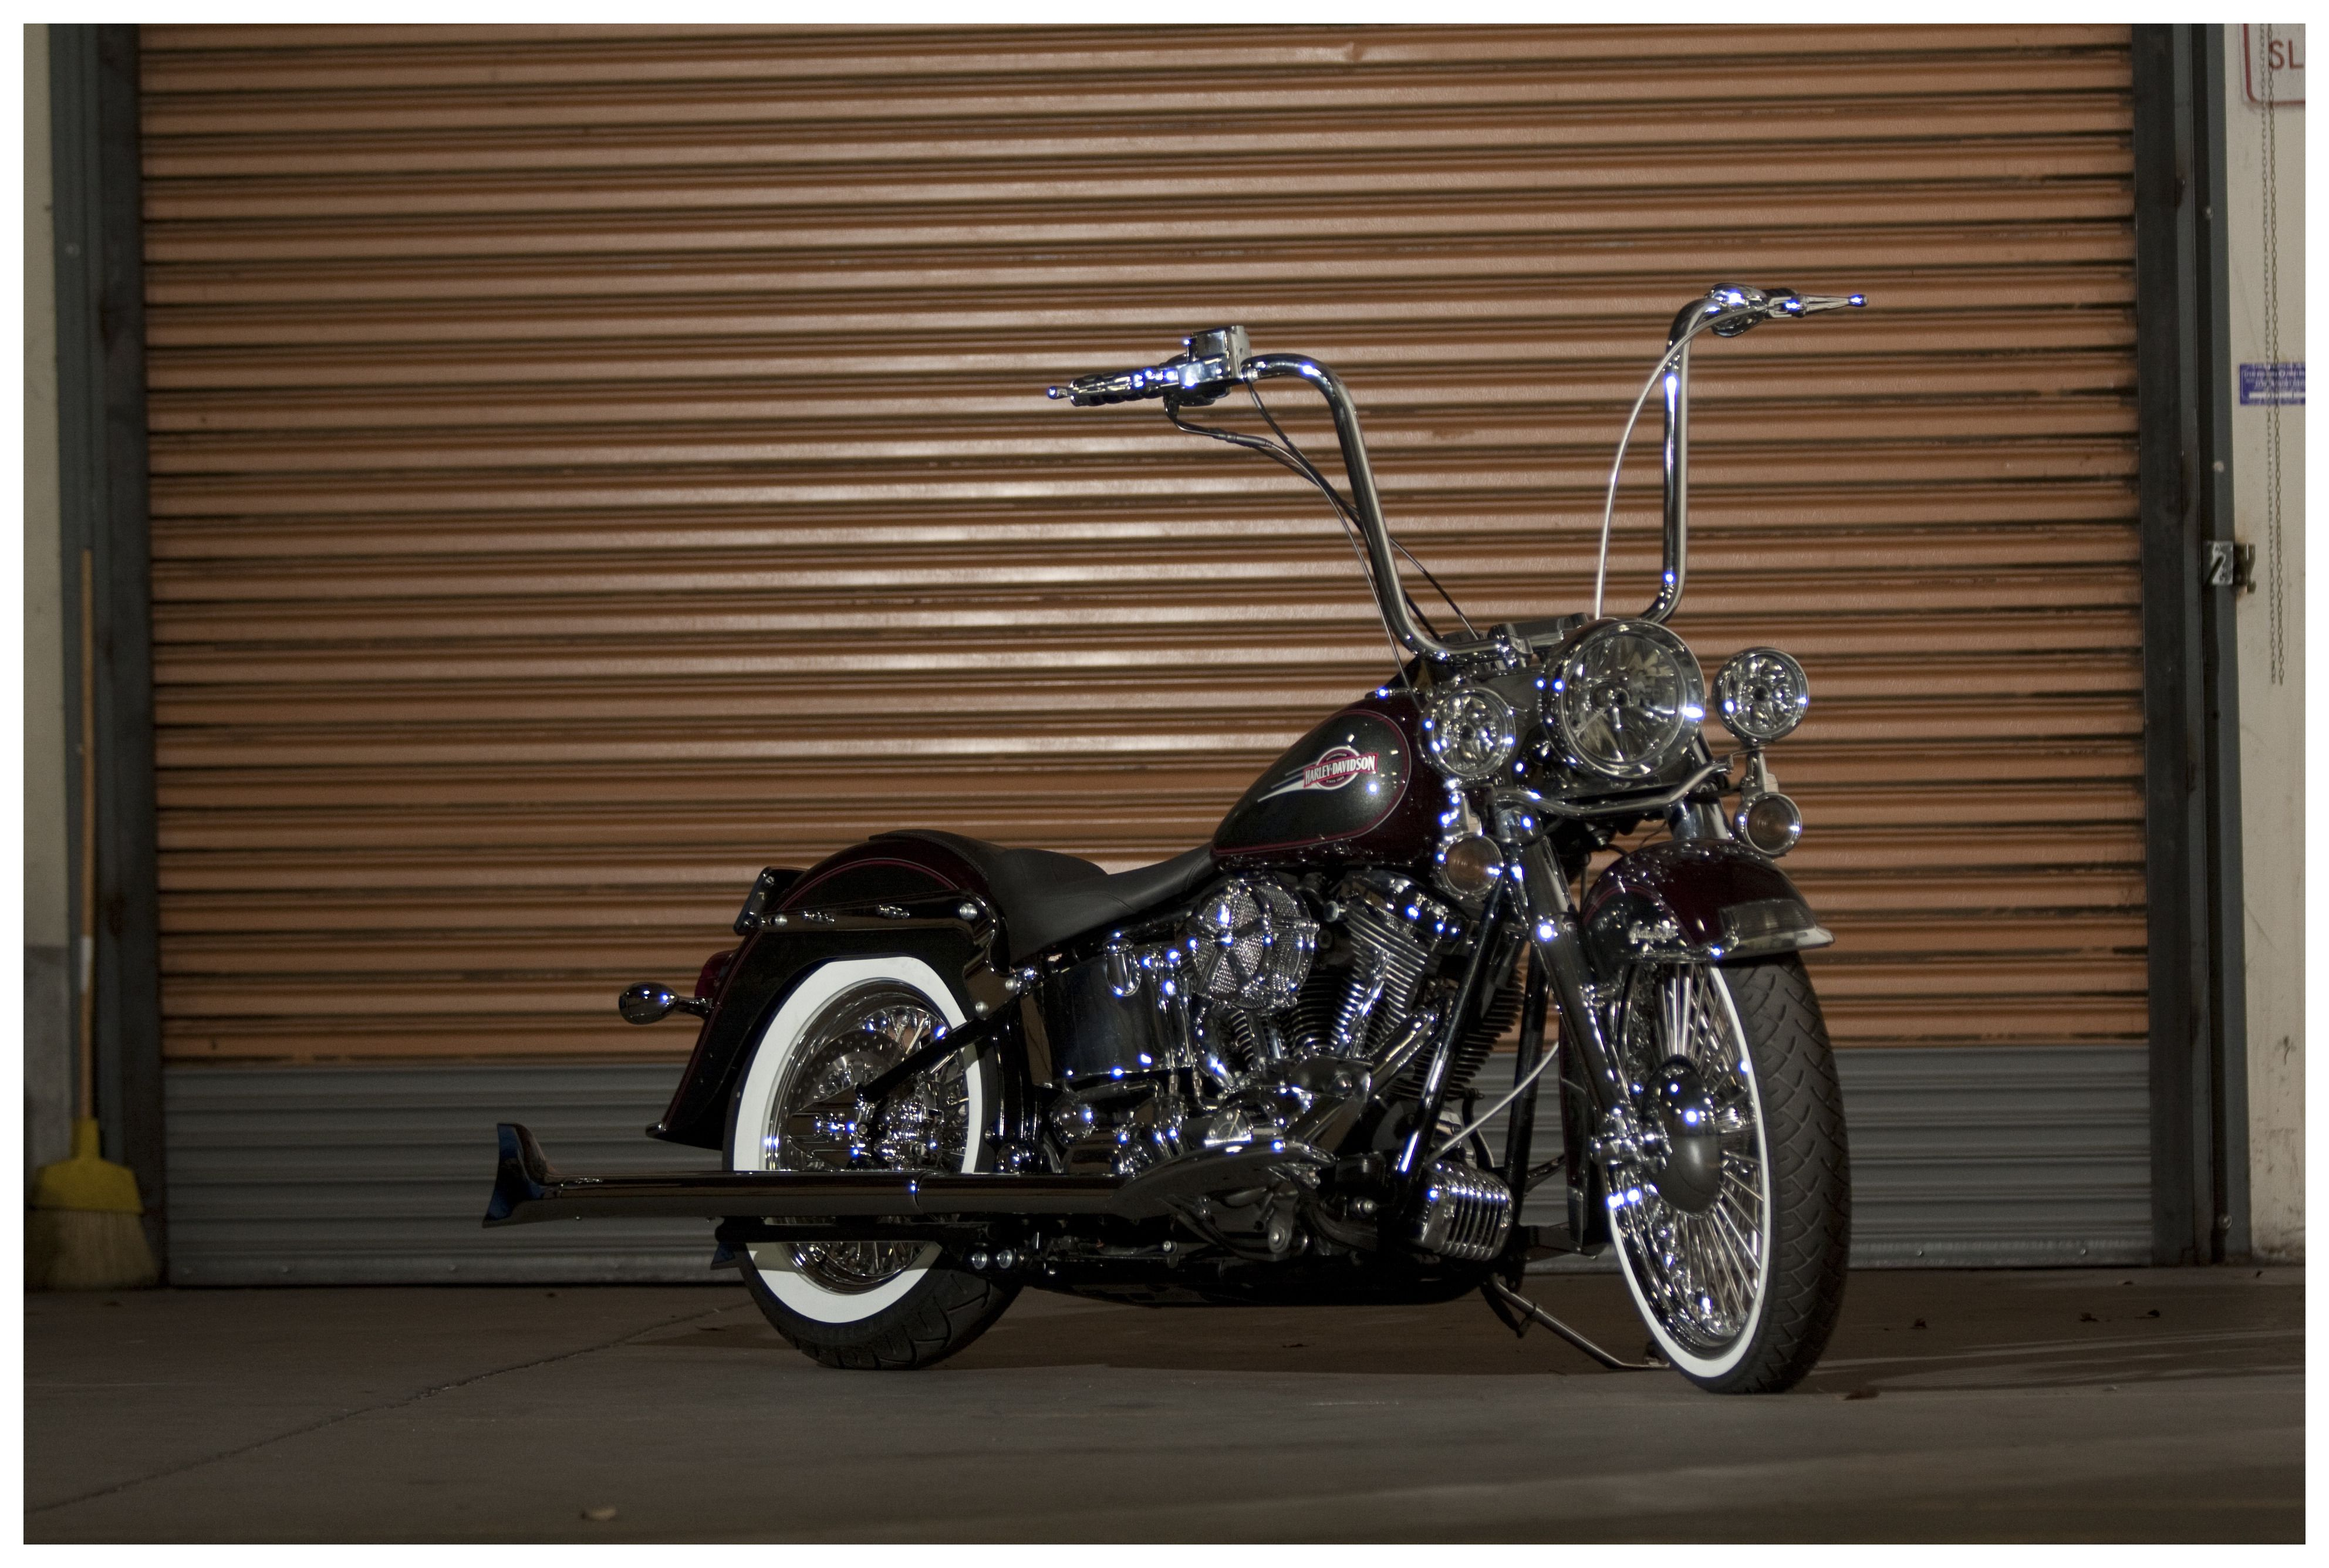 Burly Handlebar Cable Installation Kit For Harley Softail Fx 2007 1986 Heritage Wiring Diagram 2010 10 1999 Off Revzilla